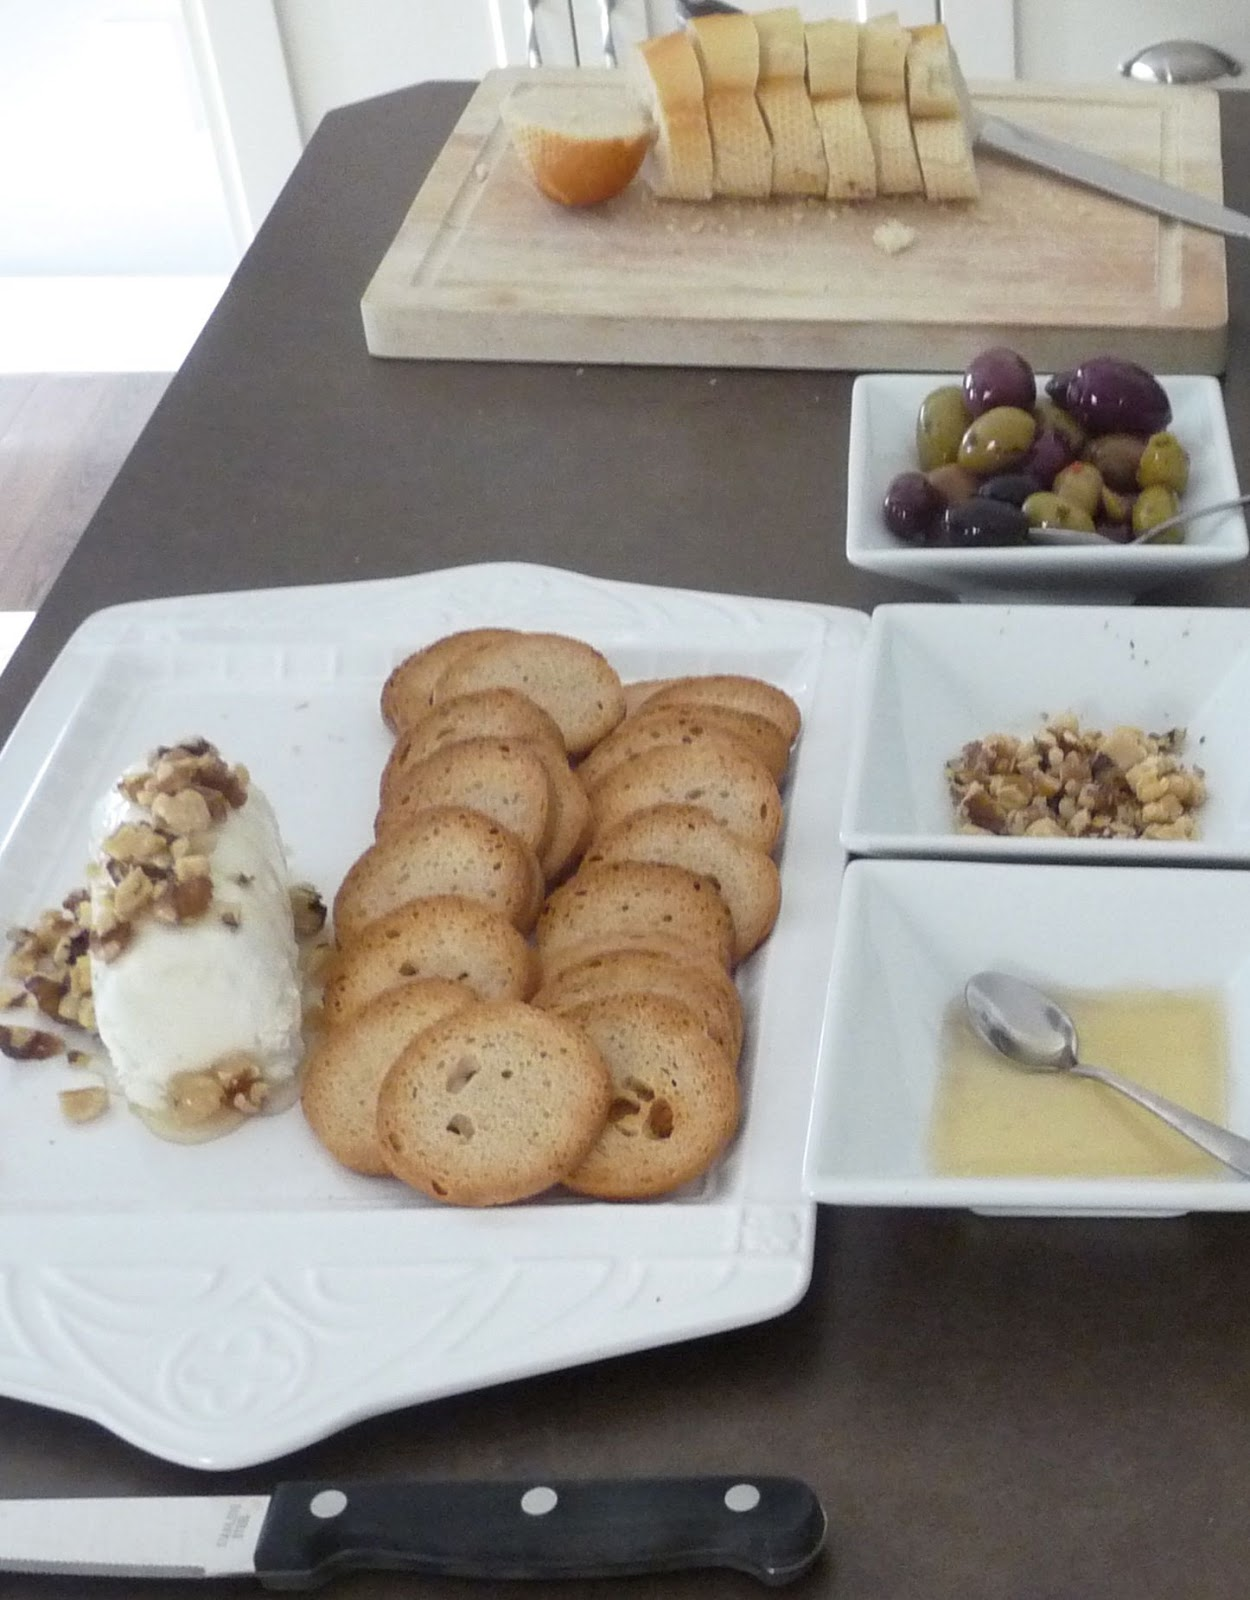 Goat Cheese, Honey & Walnuts, Oh My!